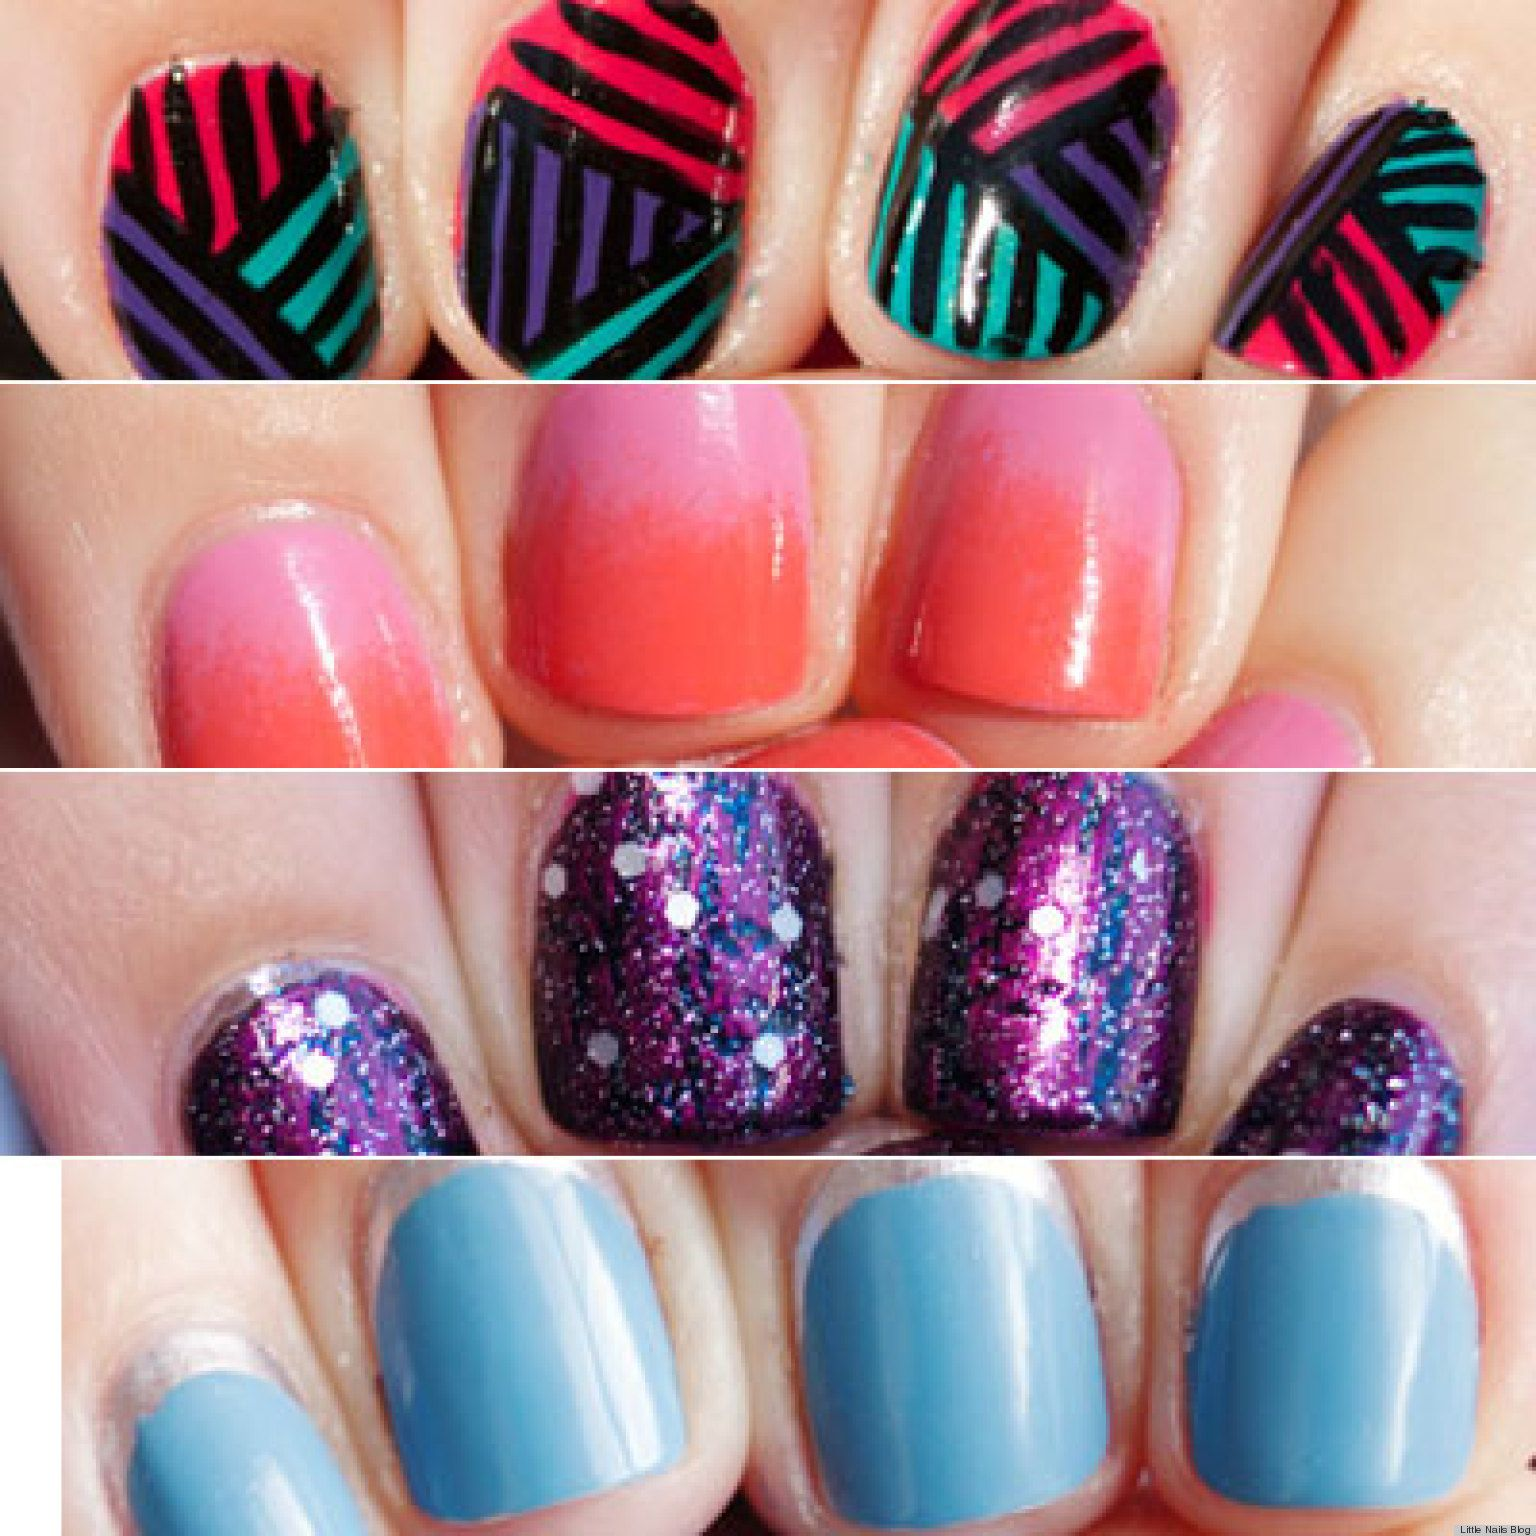 13 nail art ideas for teeny tiny fingertips photos short nails 13 nail art ideas for teeny tiny fingertips prinsesfo Image collections